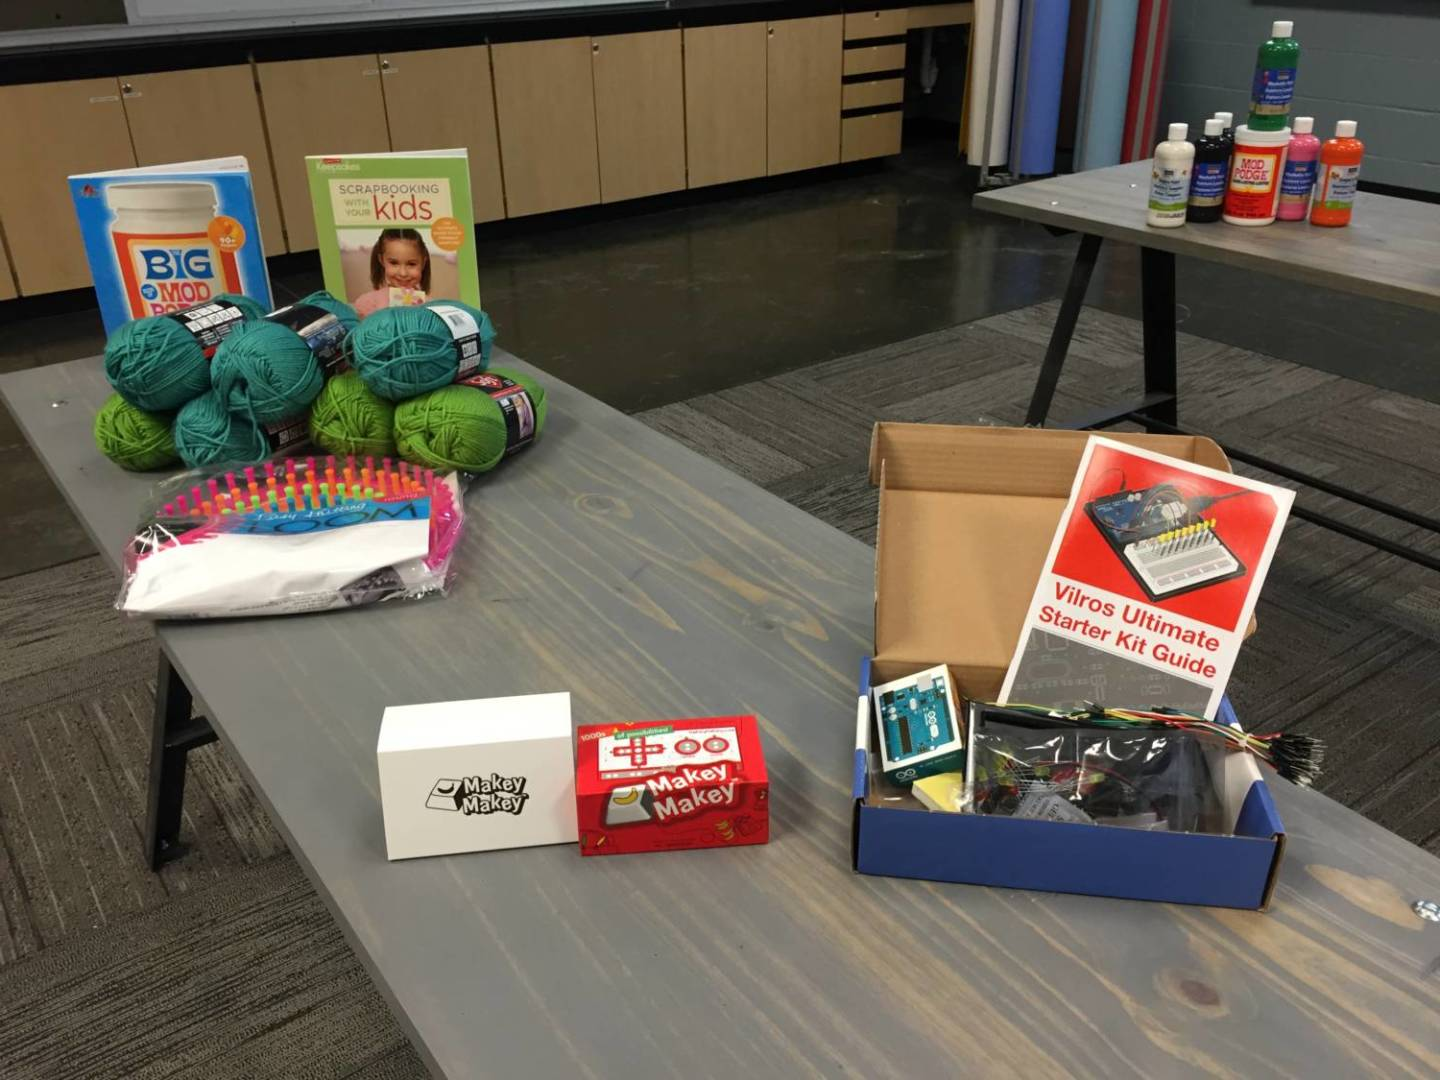 Carlson said it's important that makerspaces have a variety of materials so students can choose what inspires them.